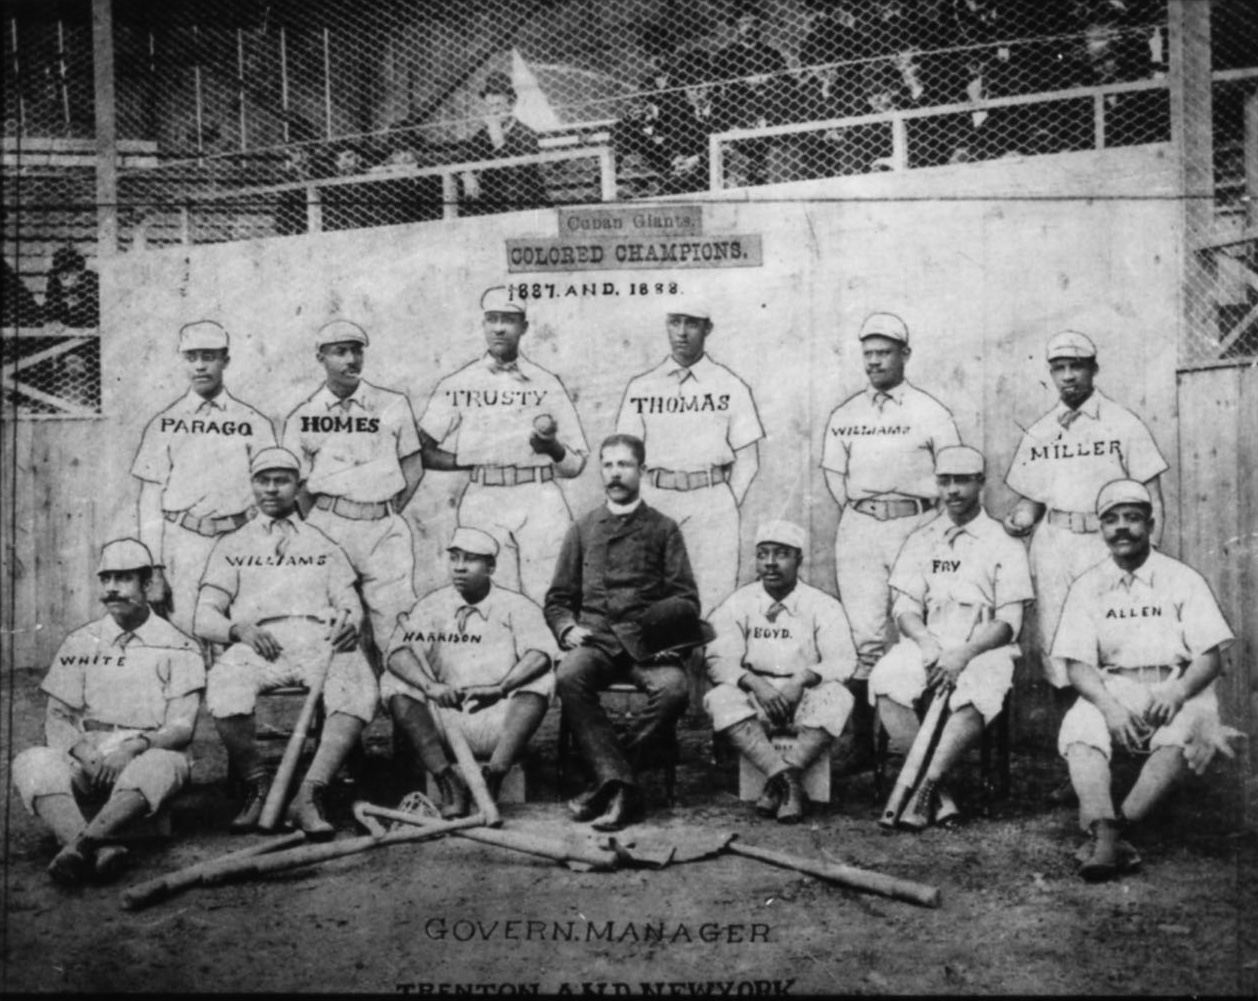 cuban-giants-of-1887.jpg